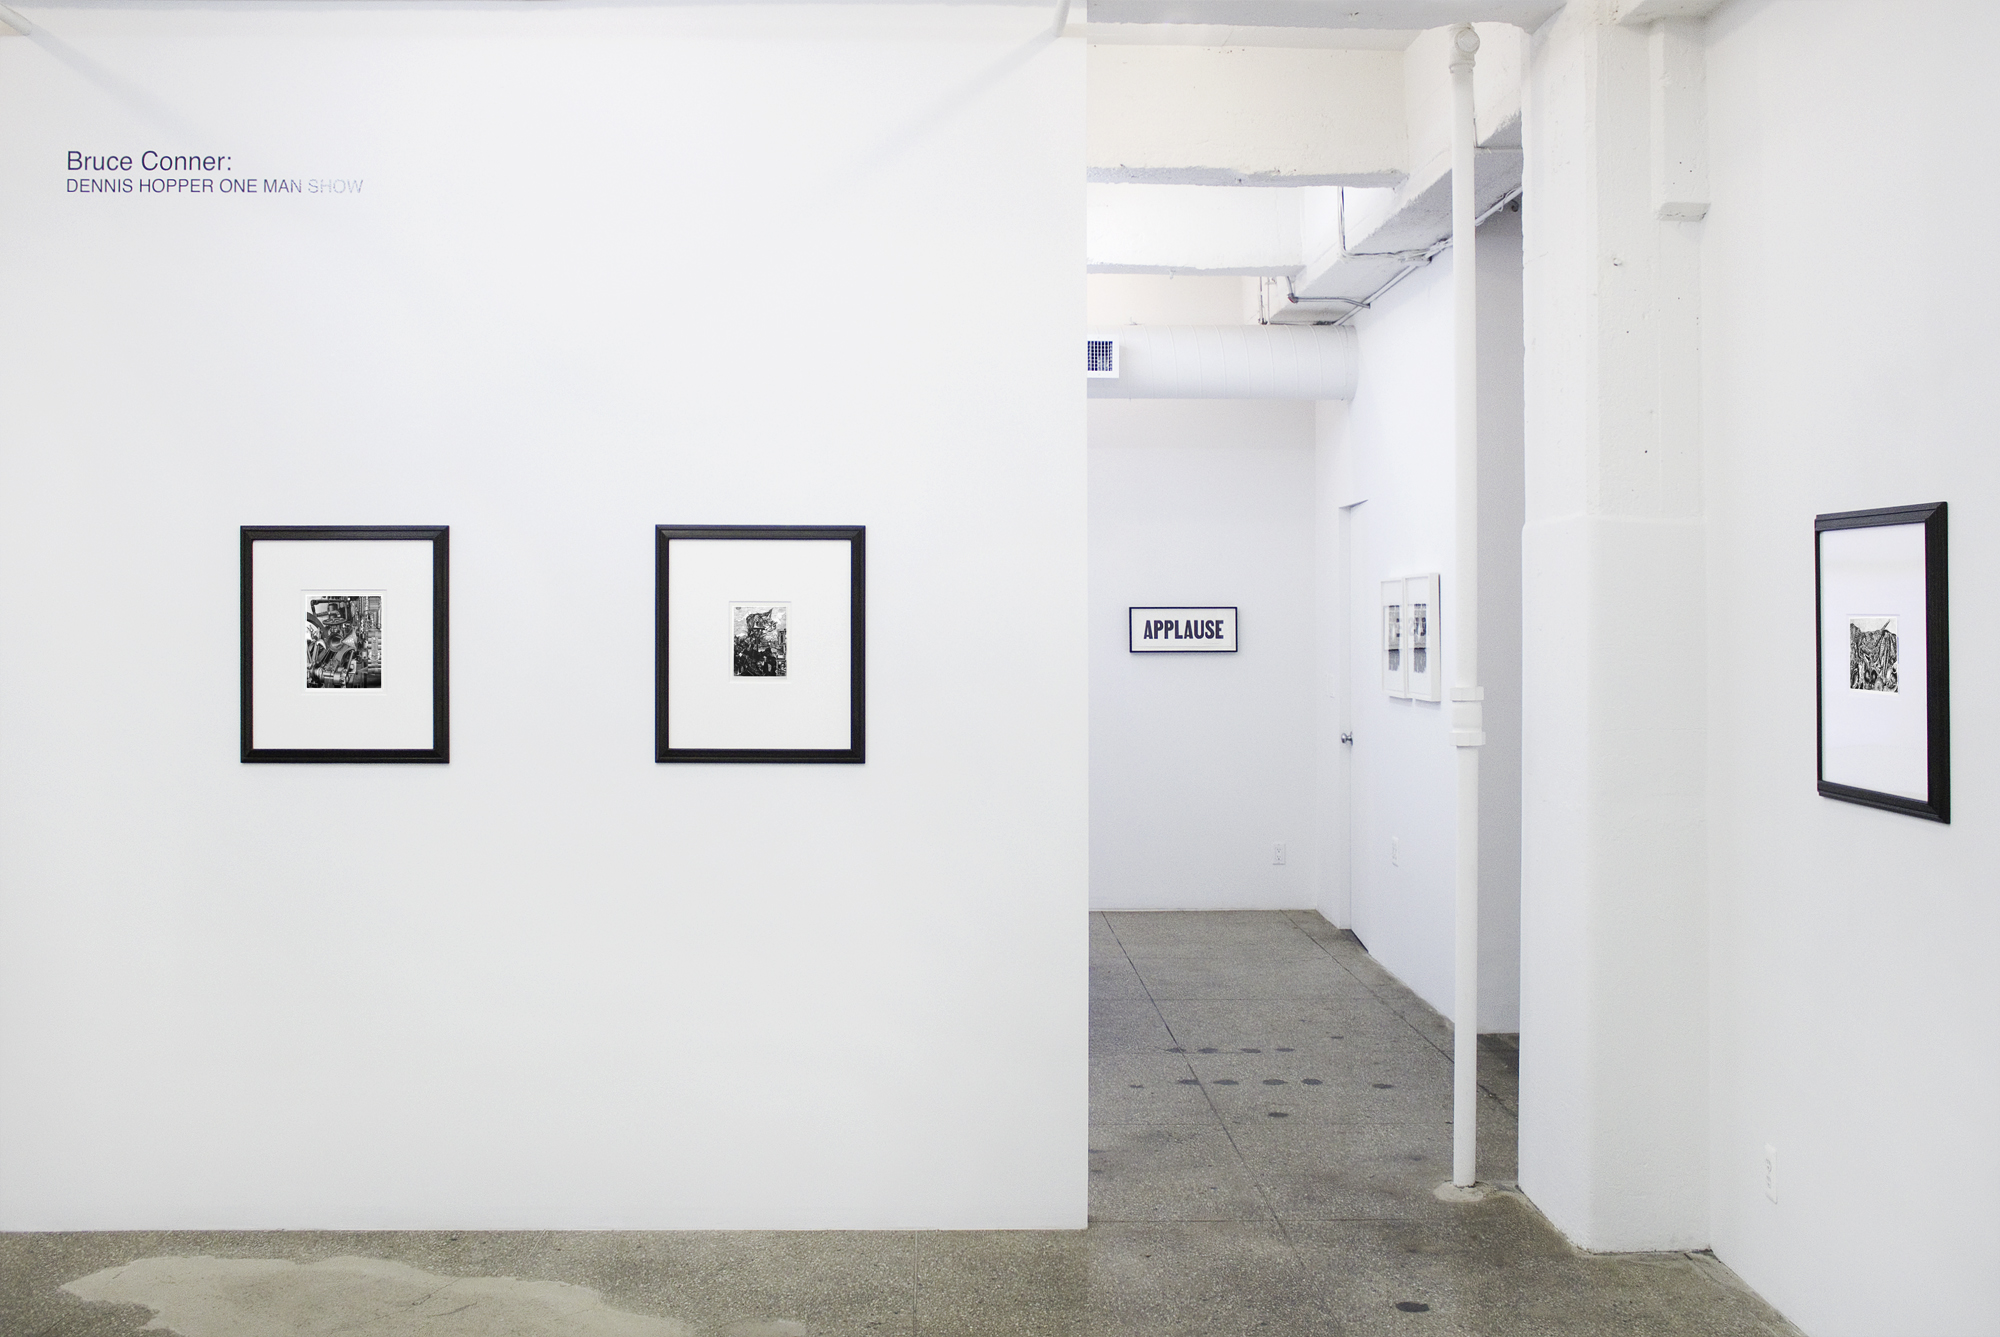 Installation View: Bruce Conner: Dennis Hopper ONE MAN SHOW